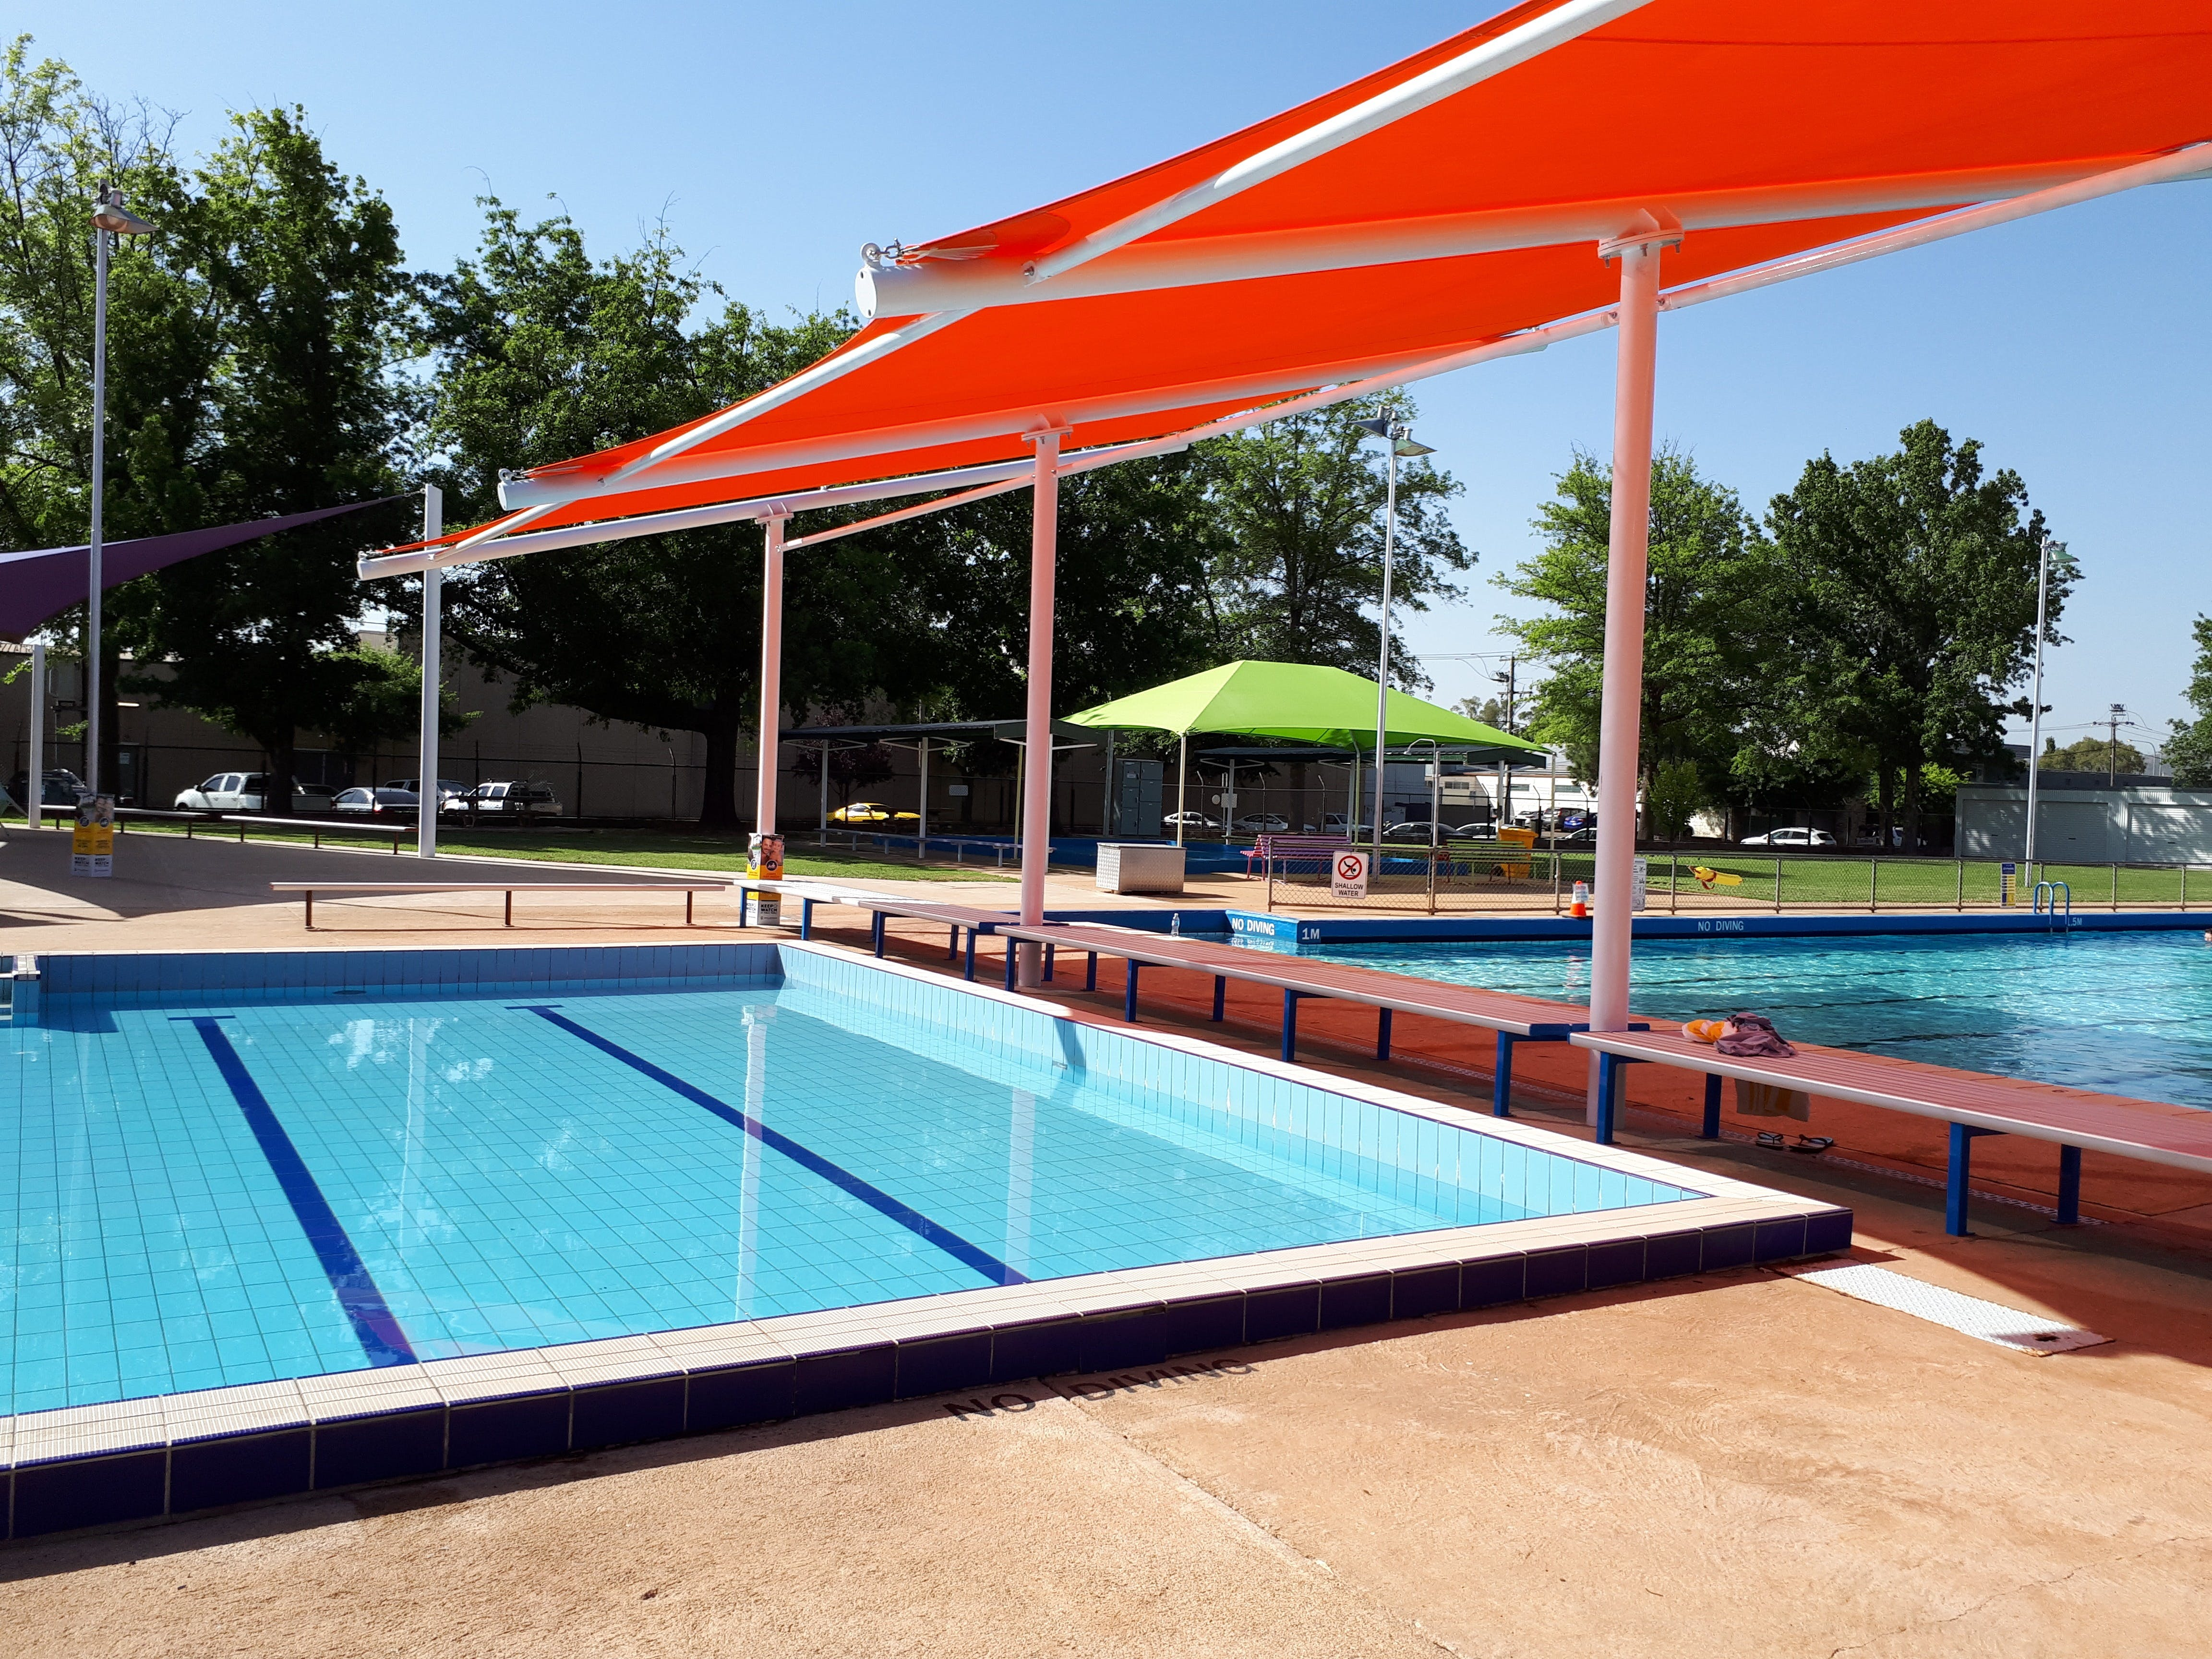 Cootamundra Municipal Swimming Pool - ACT Tourism